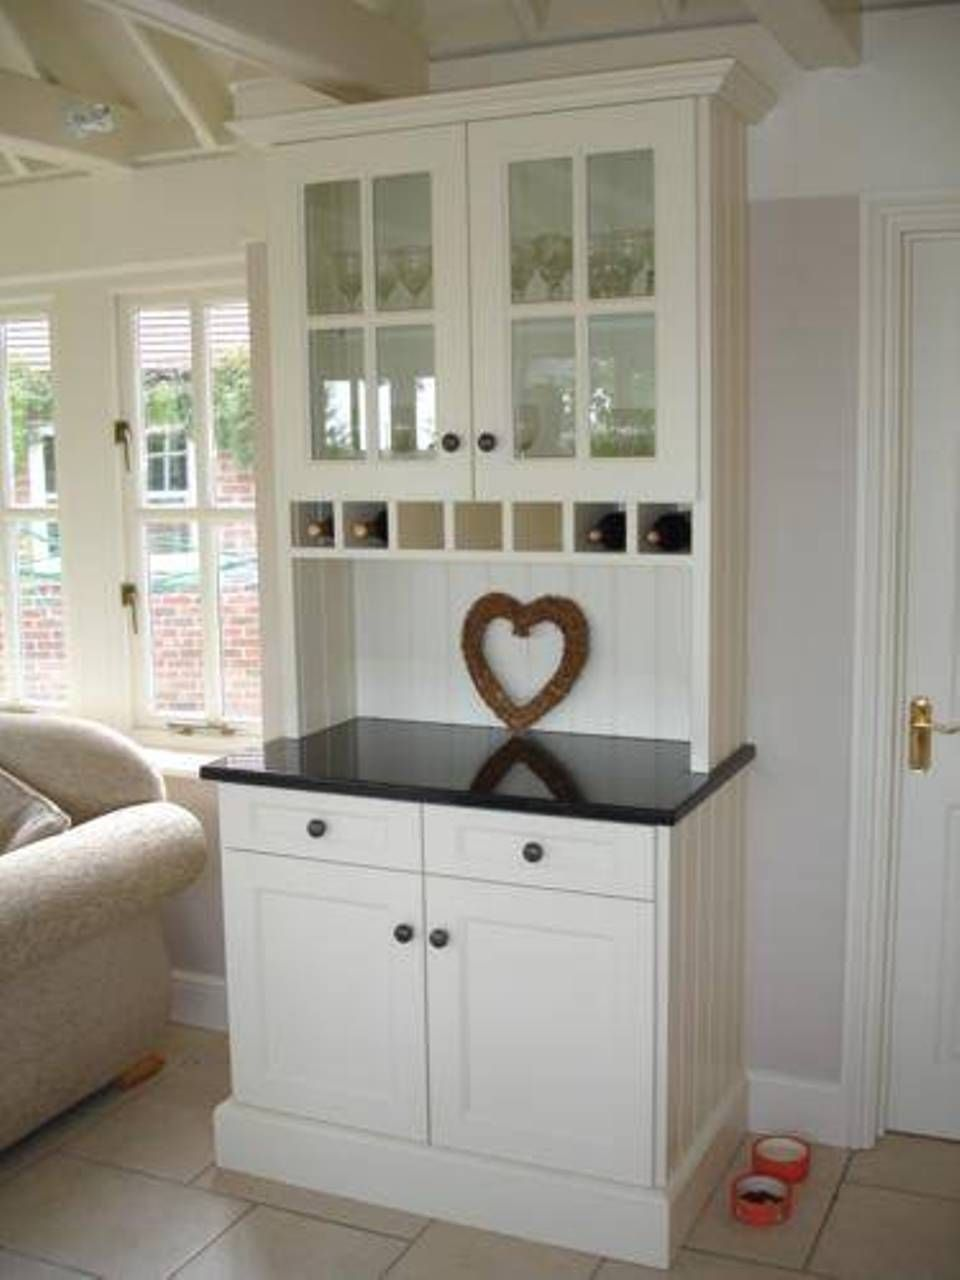 Furniture , Benefits Of Free Standing Kitchen Cabinets : Free Standing Kitchen Cabinets With Soapstone Countertop And White Cabinets